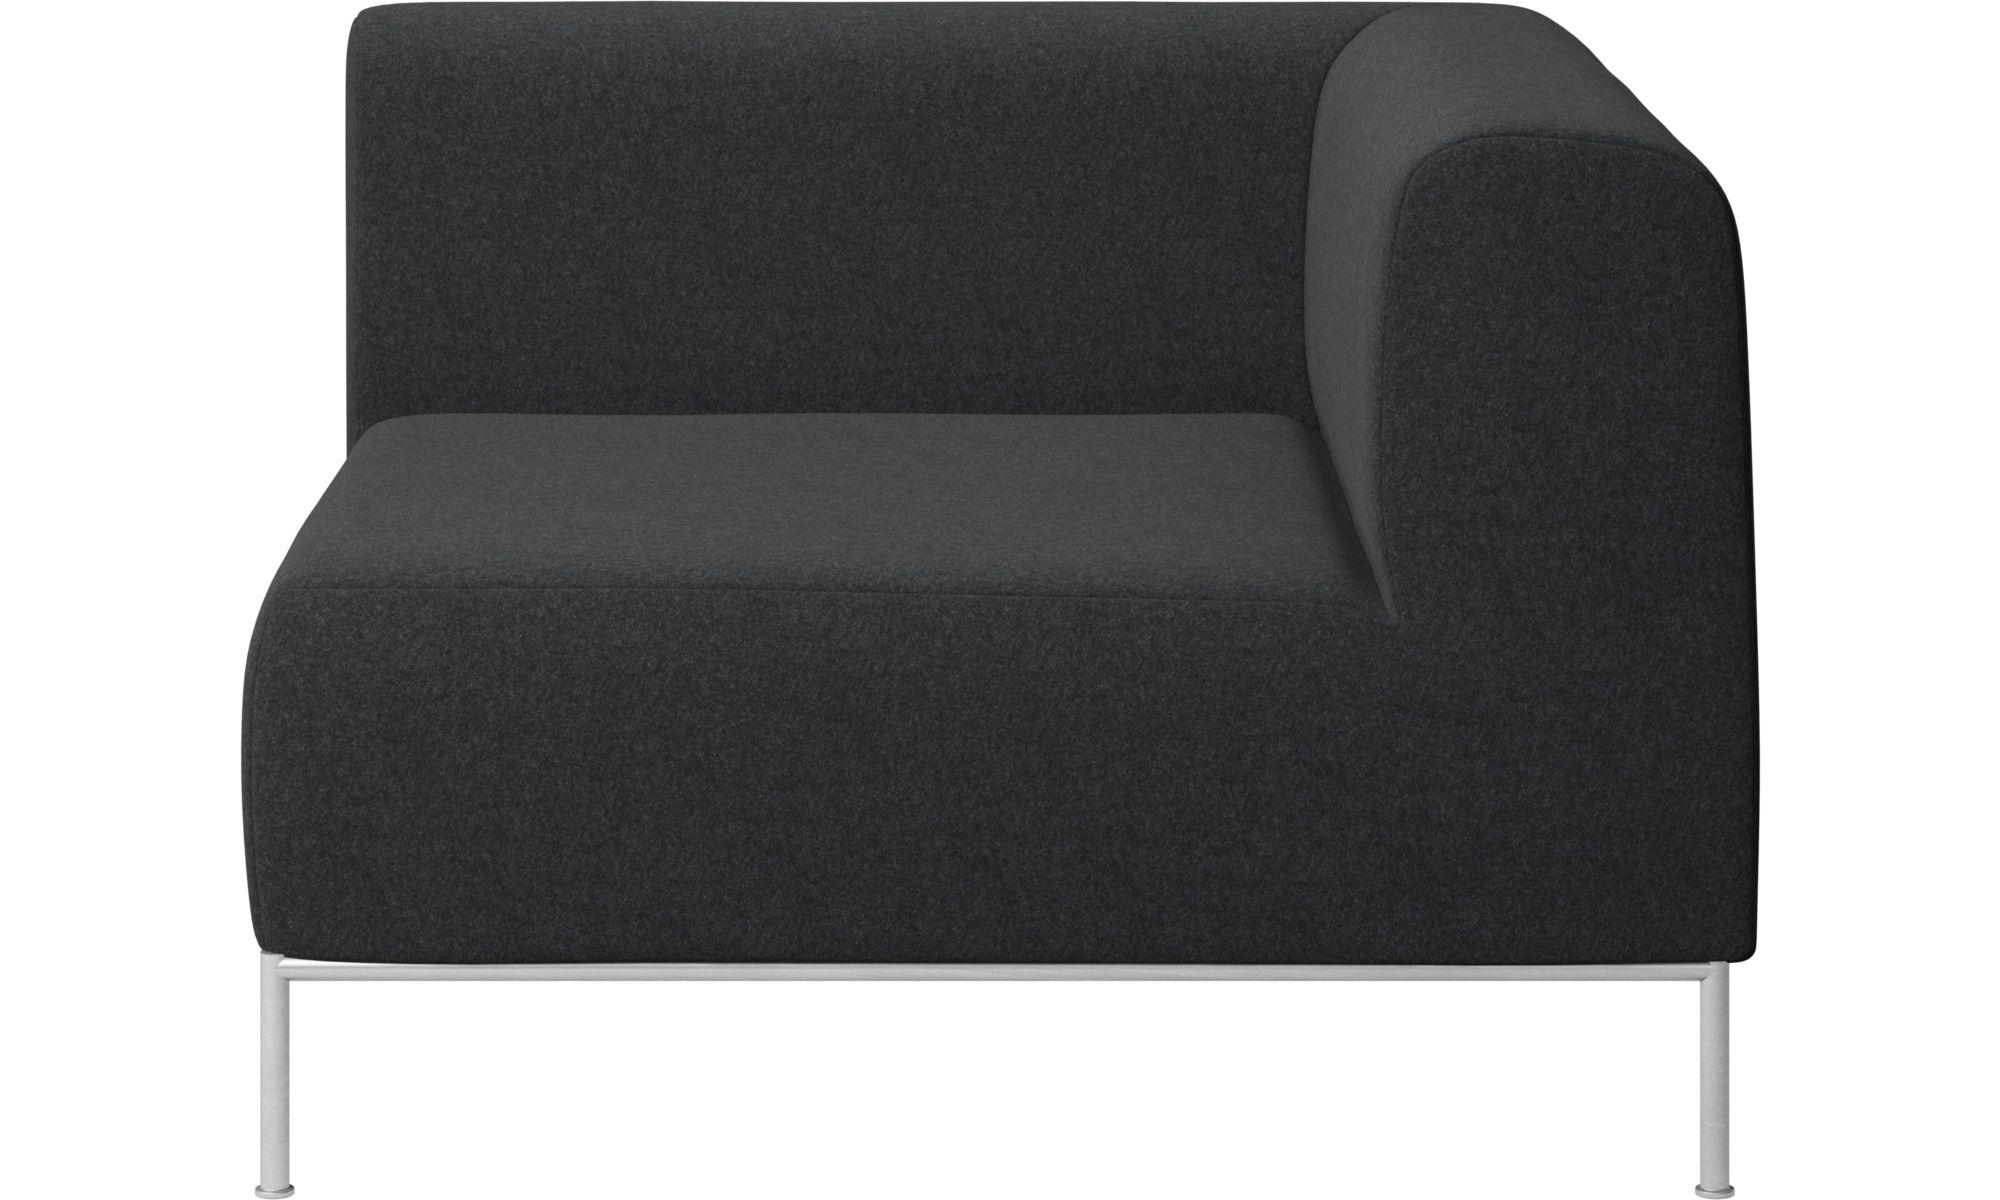 Modular sofas - Miami corner unit right side - BoConcept